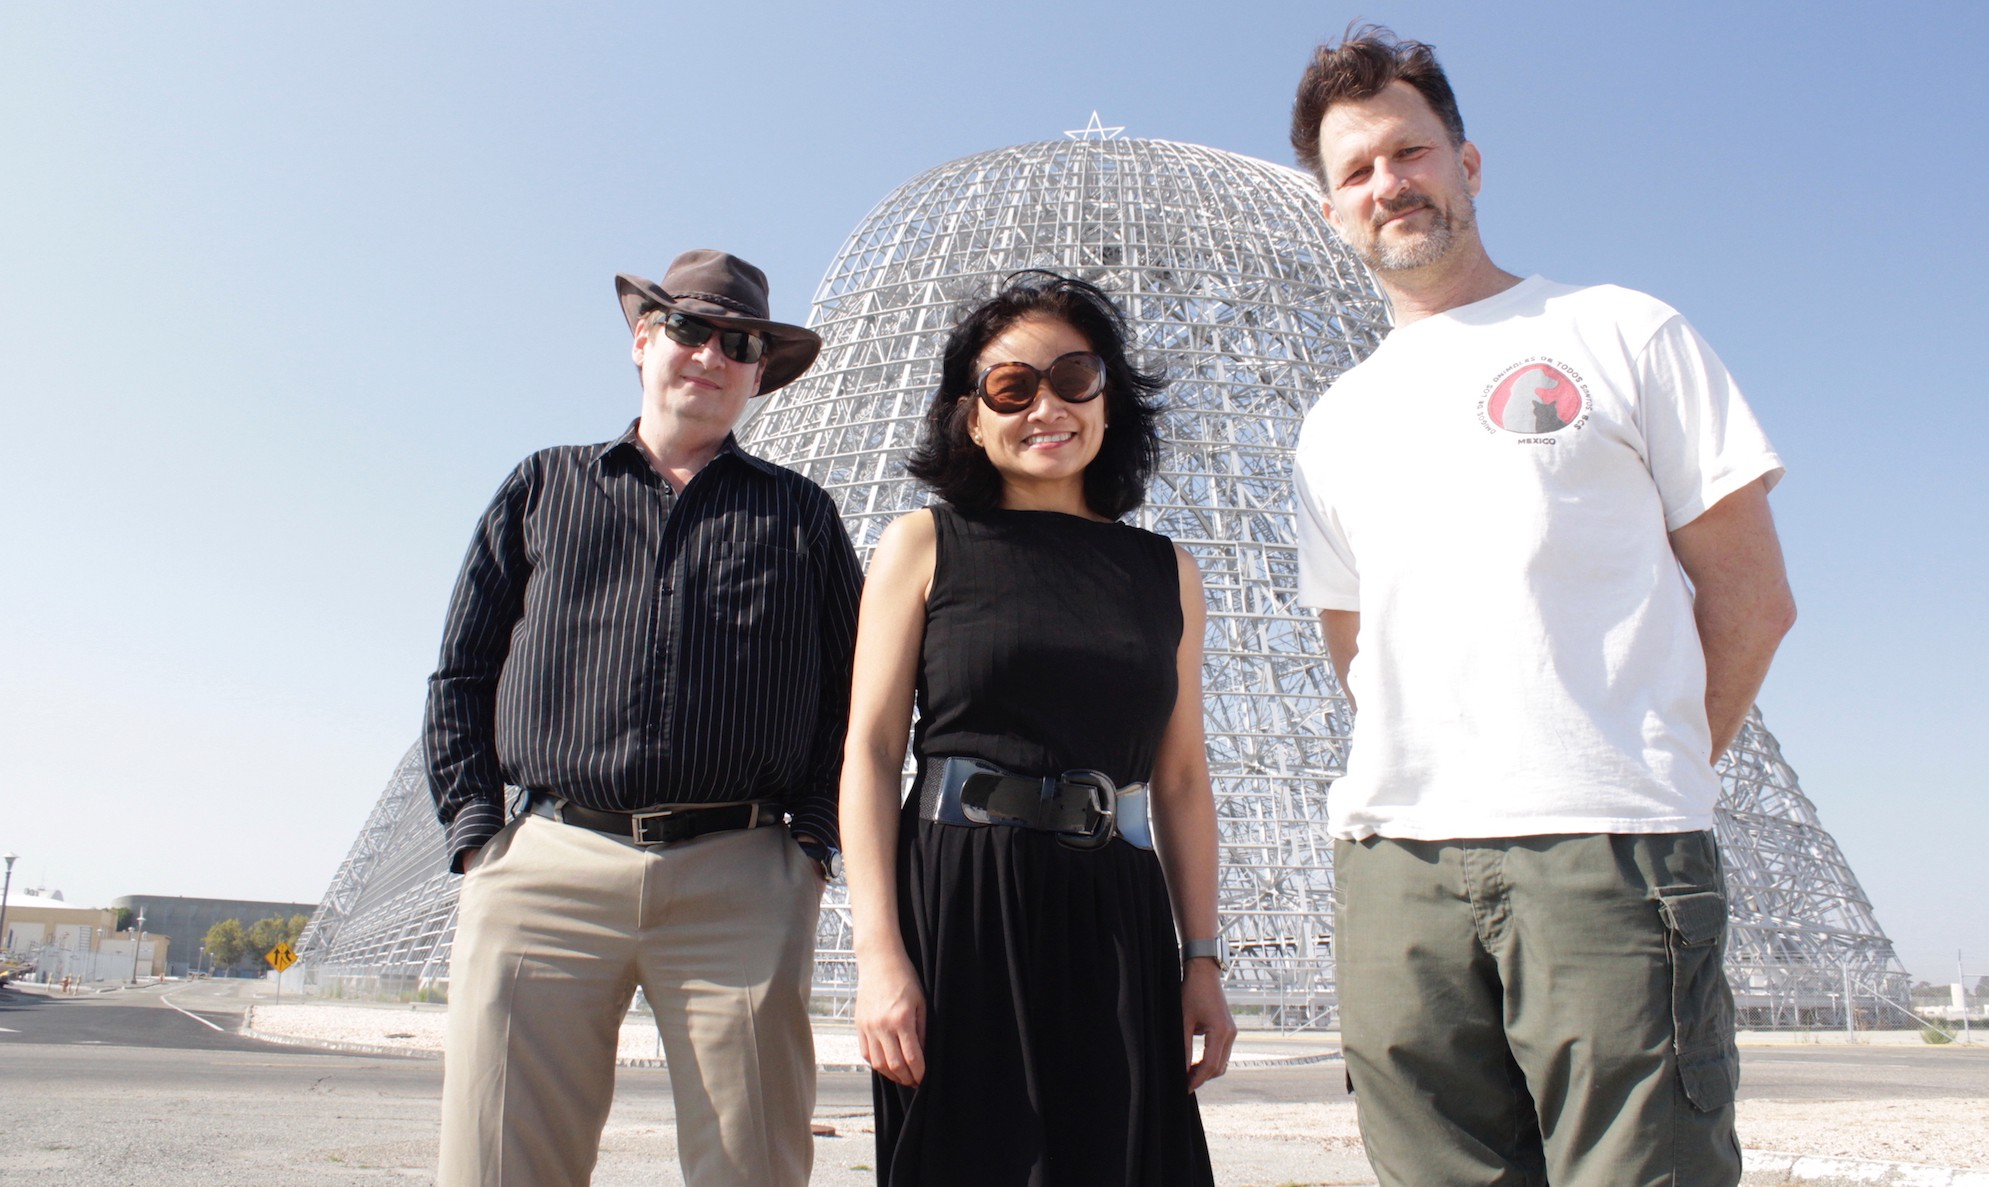 Team SpaceBase: Eric Dahlstrom, Emeline Paat-Dahlstrom and Rich Bodo, at Hangar 1 in Mountain View, California